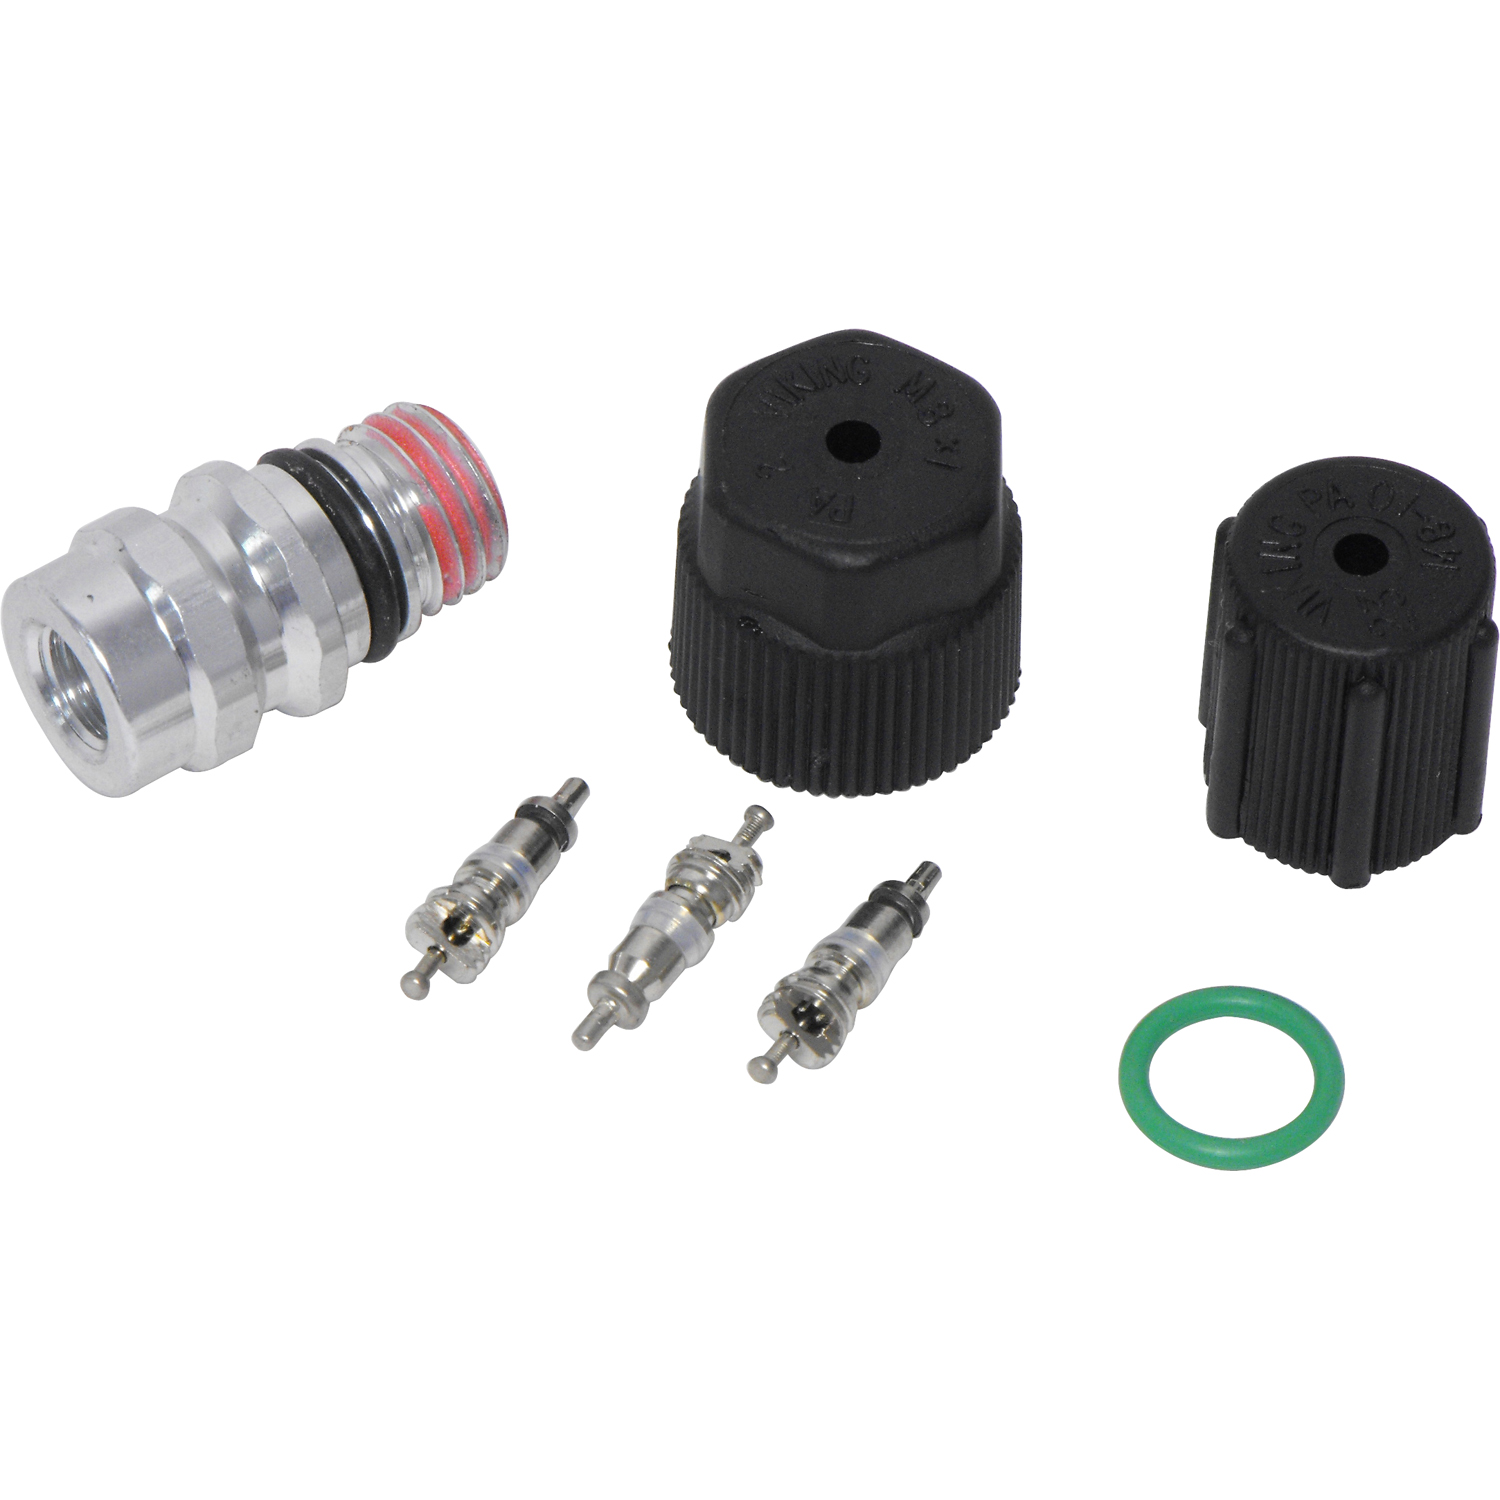 Valve and Cap Kit VC 2901